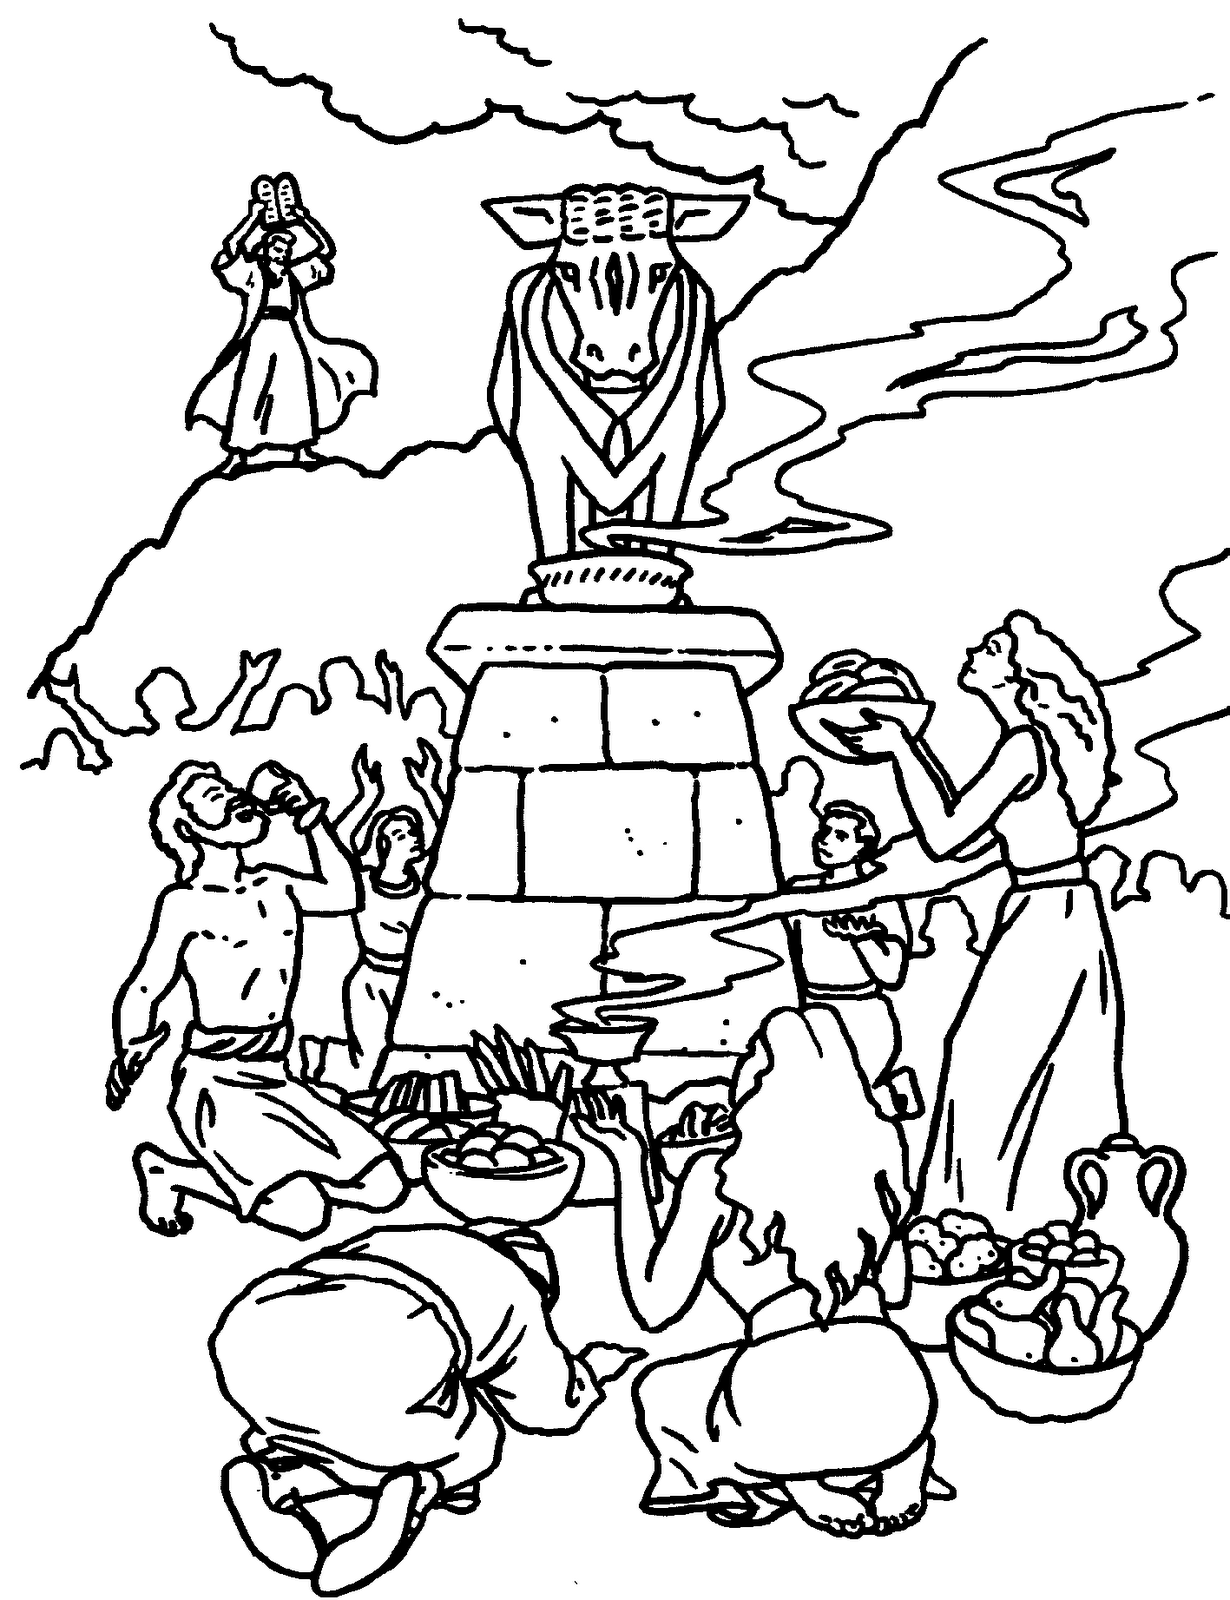 the golden calf coloring page the golden calf bible pathway adventures calf the page coloring golden